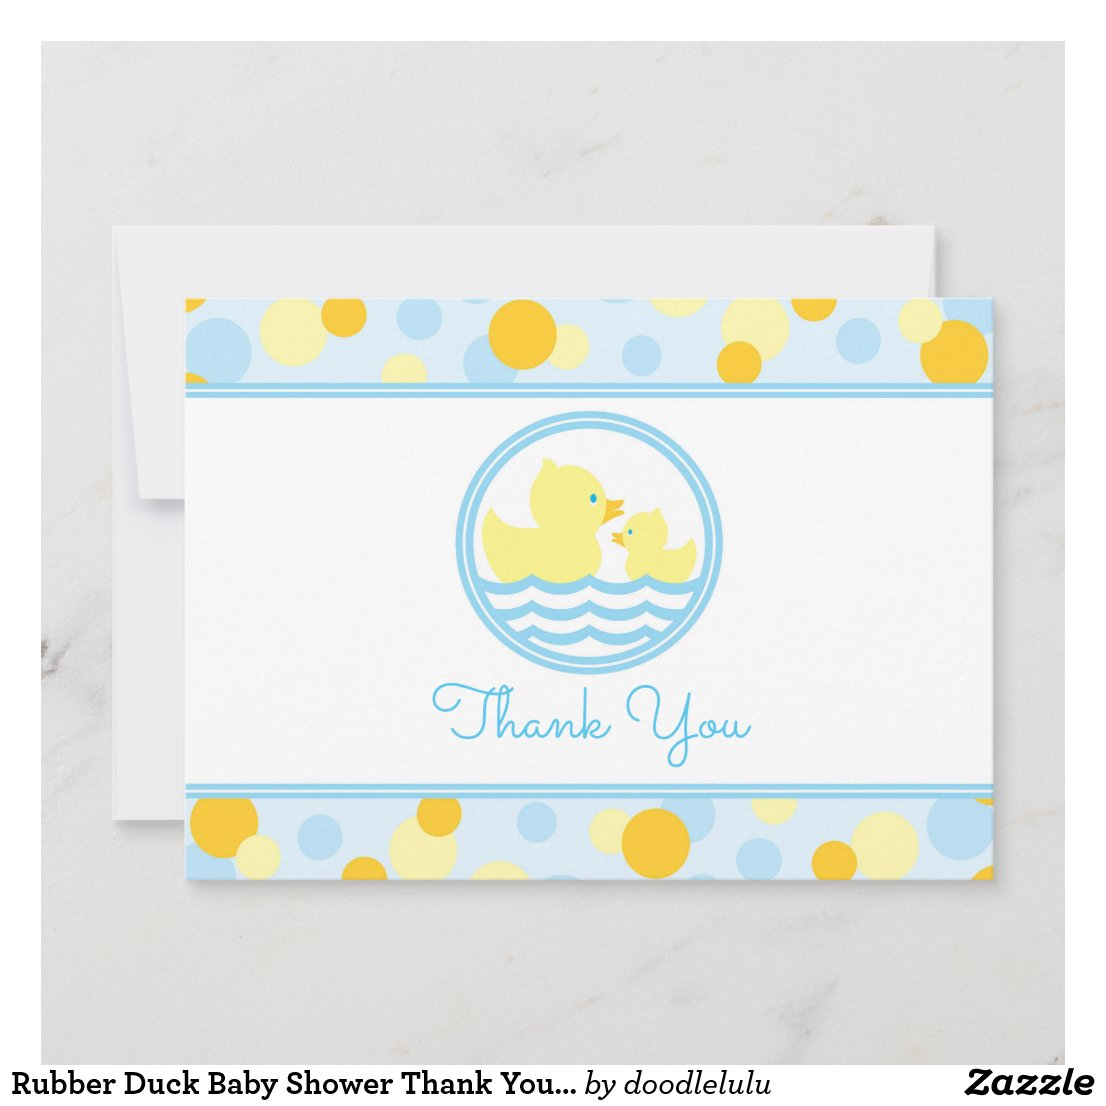 Rubber Duck Baby Shower Thank You blue and yellow